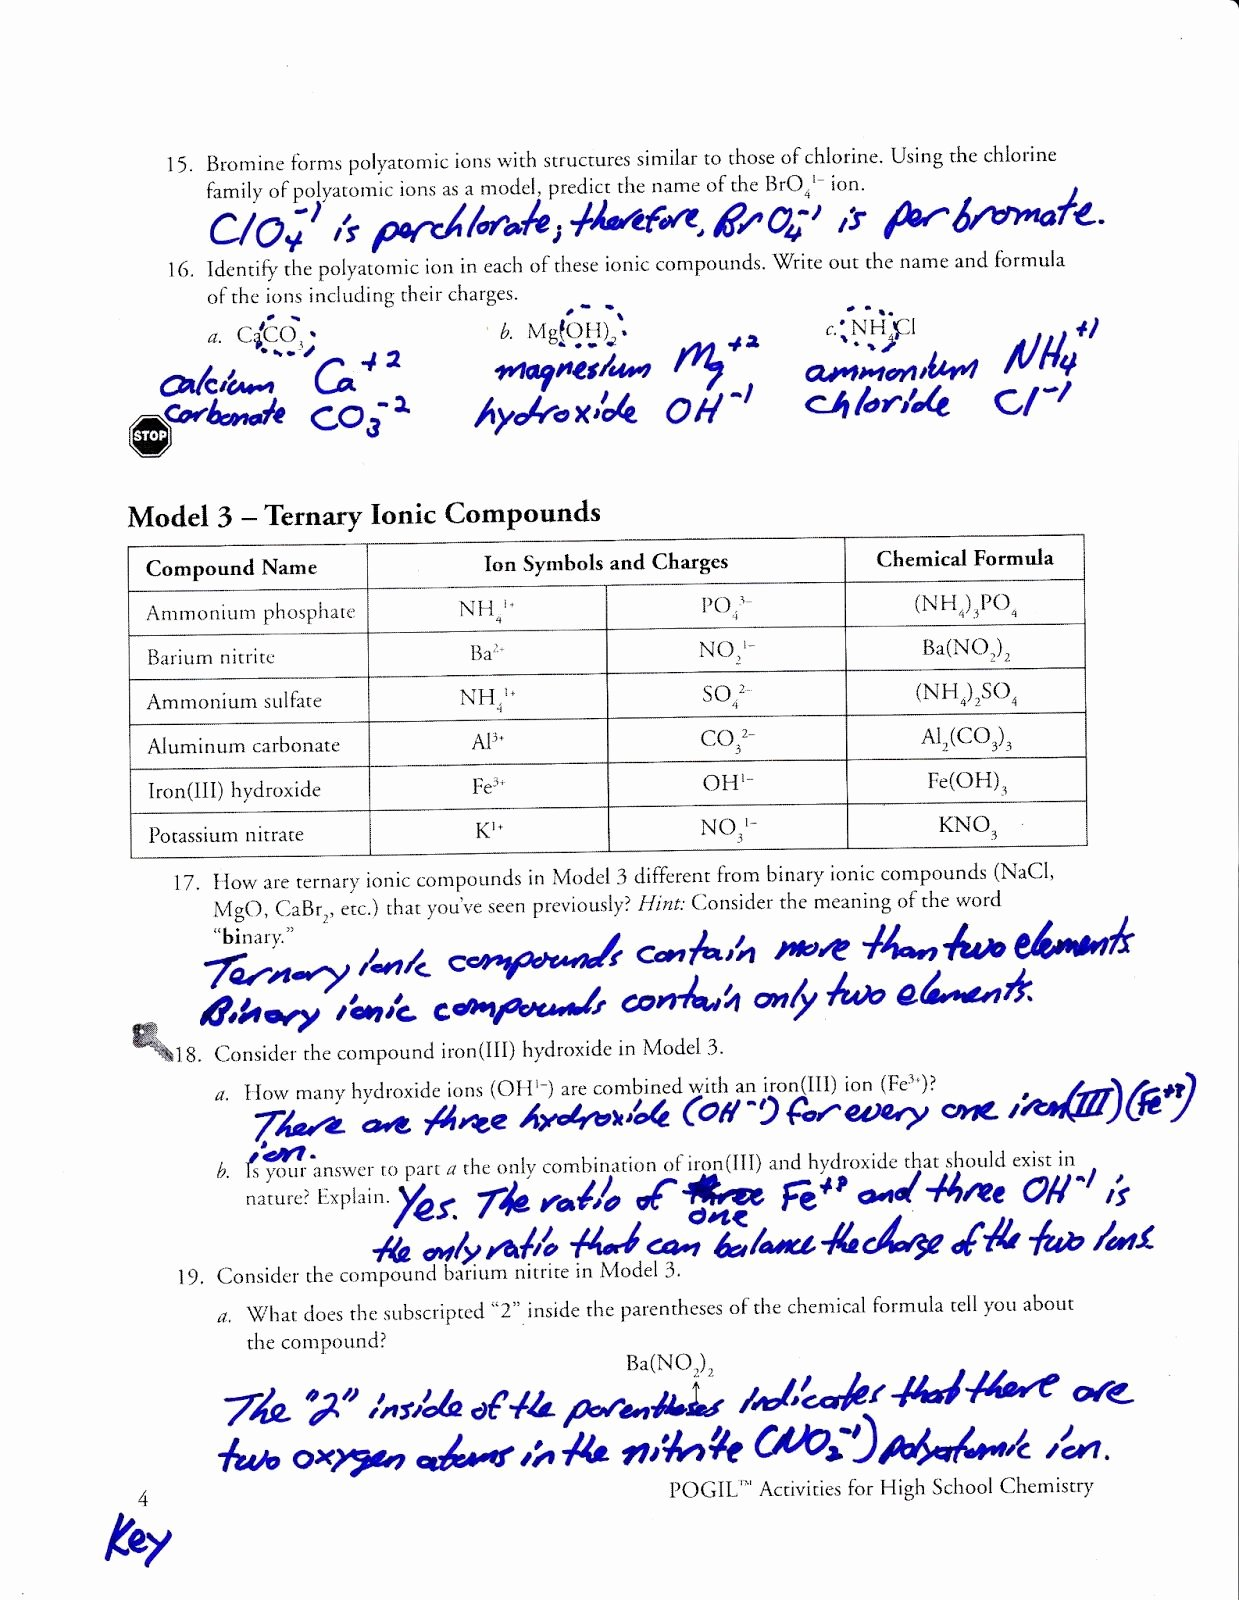 Nuclear Chemistry Worksheet Answer Key Luxury Nuclear Chemistry Worksheet K Answer Key